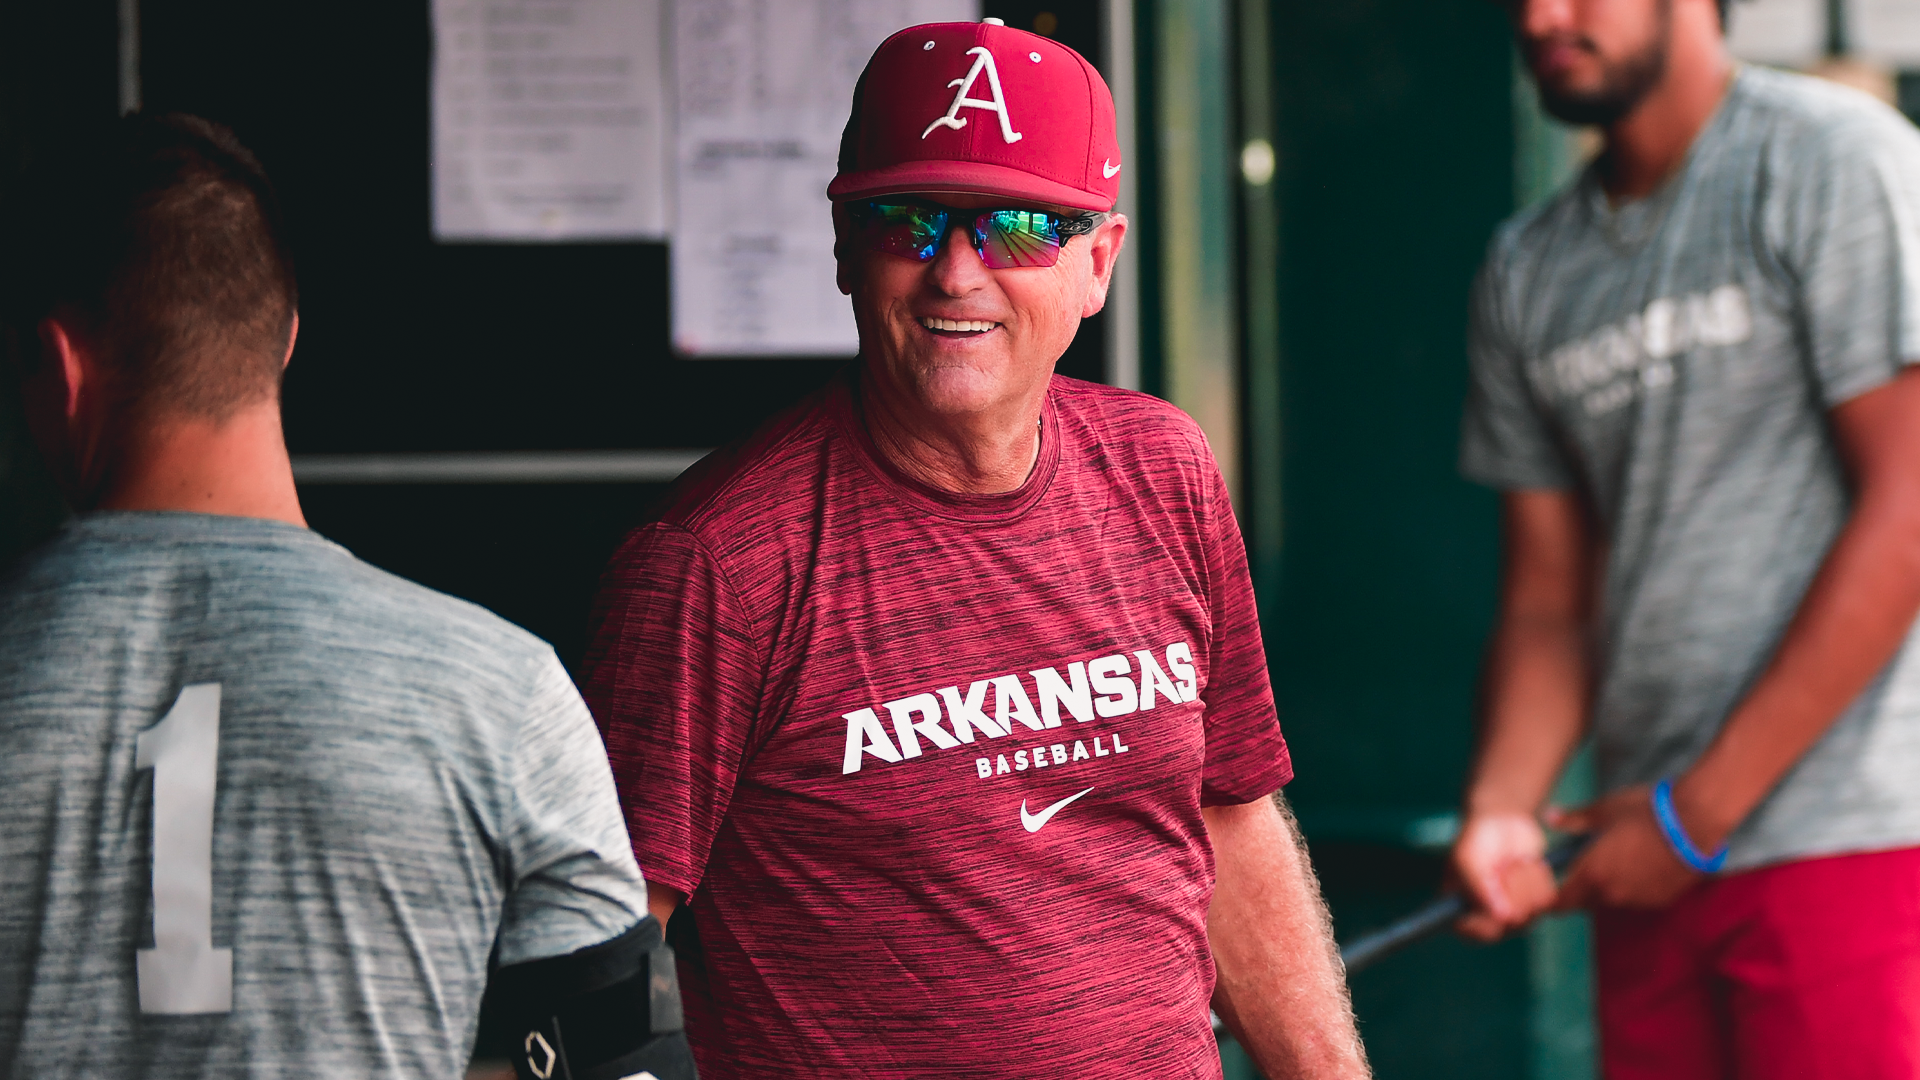 Arkansas Announces 2022 Schedule; Hogs to Make Return to Dickey-Stephens Park